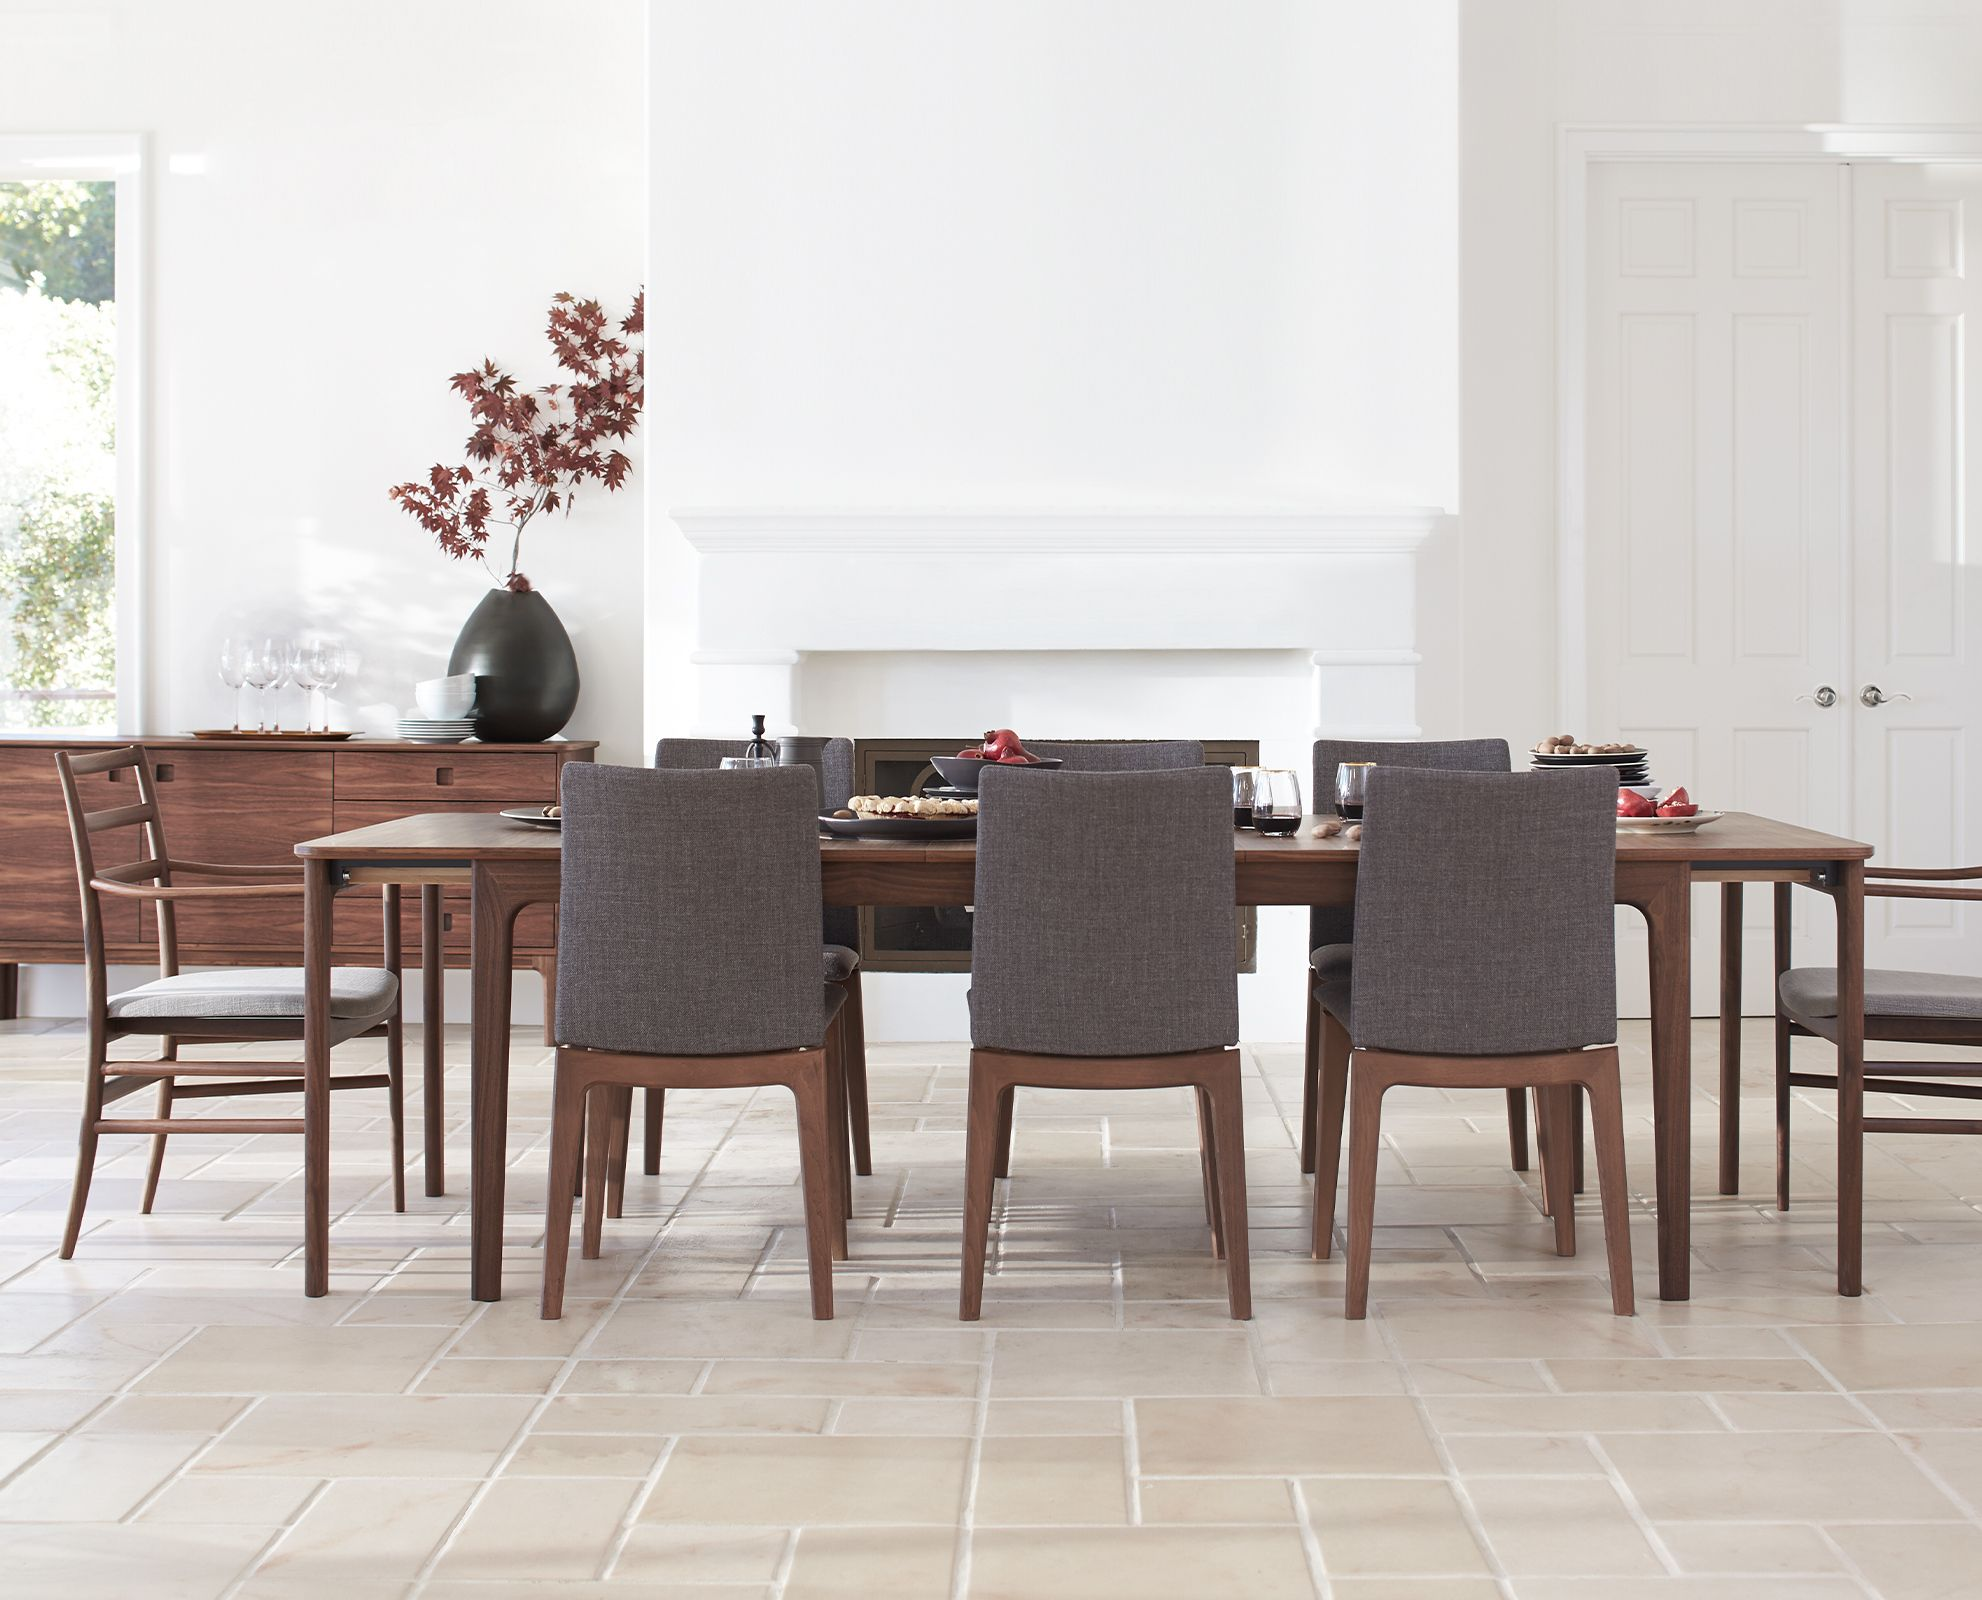 Dining Room Furniture Seattle Modern Style Furniture Check More At Http Searchfororangecountyho Dining Chairs Scandi Dining Room Scandinavian Dining Chairs